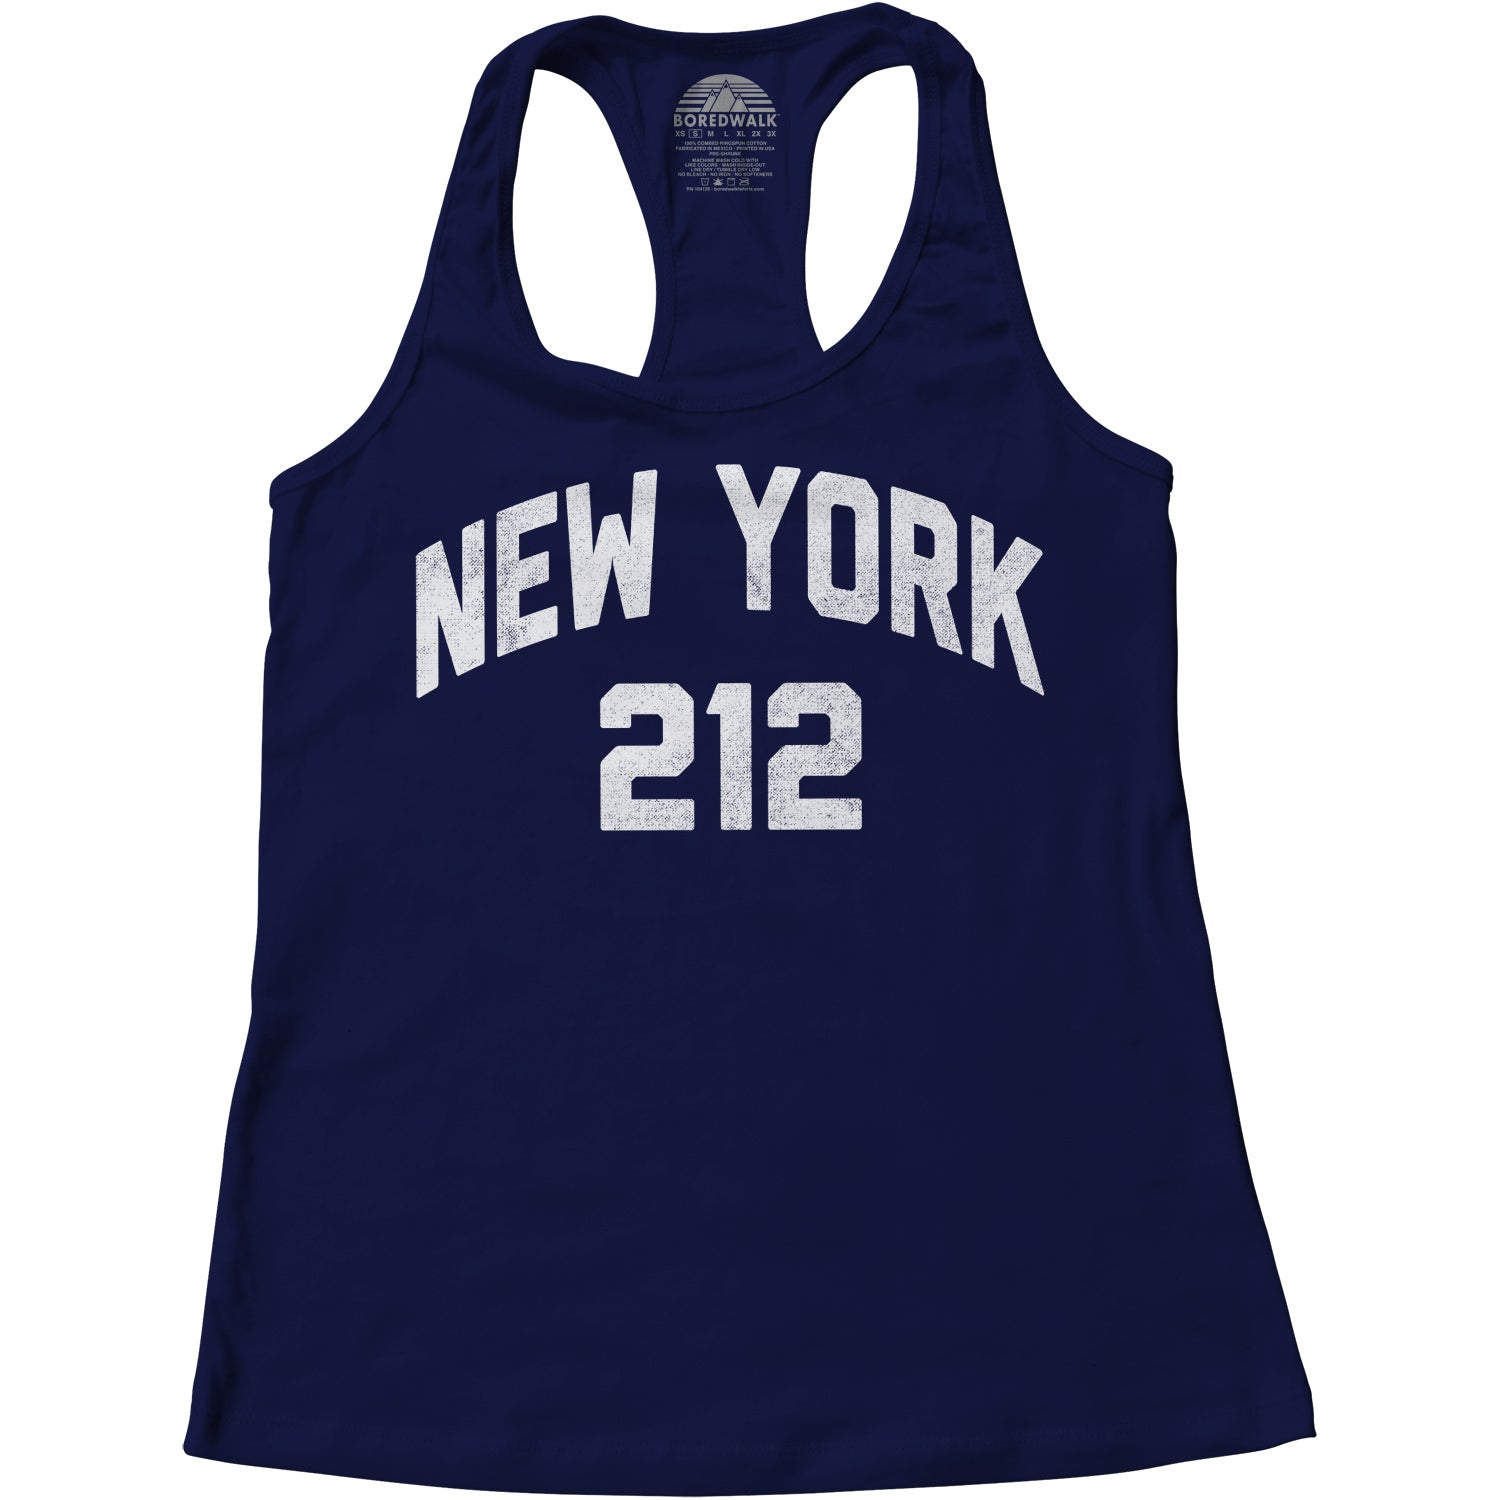 Women's New York City 212 Area Code Racerback Tank Top